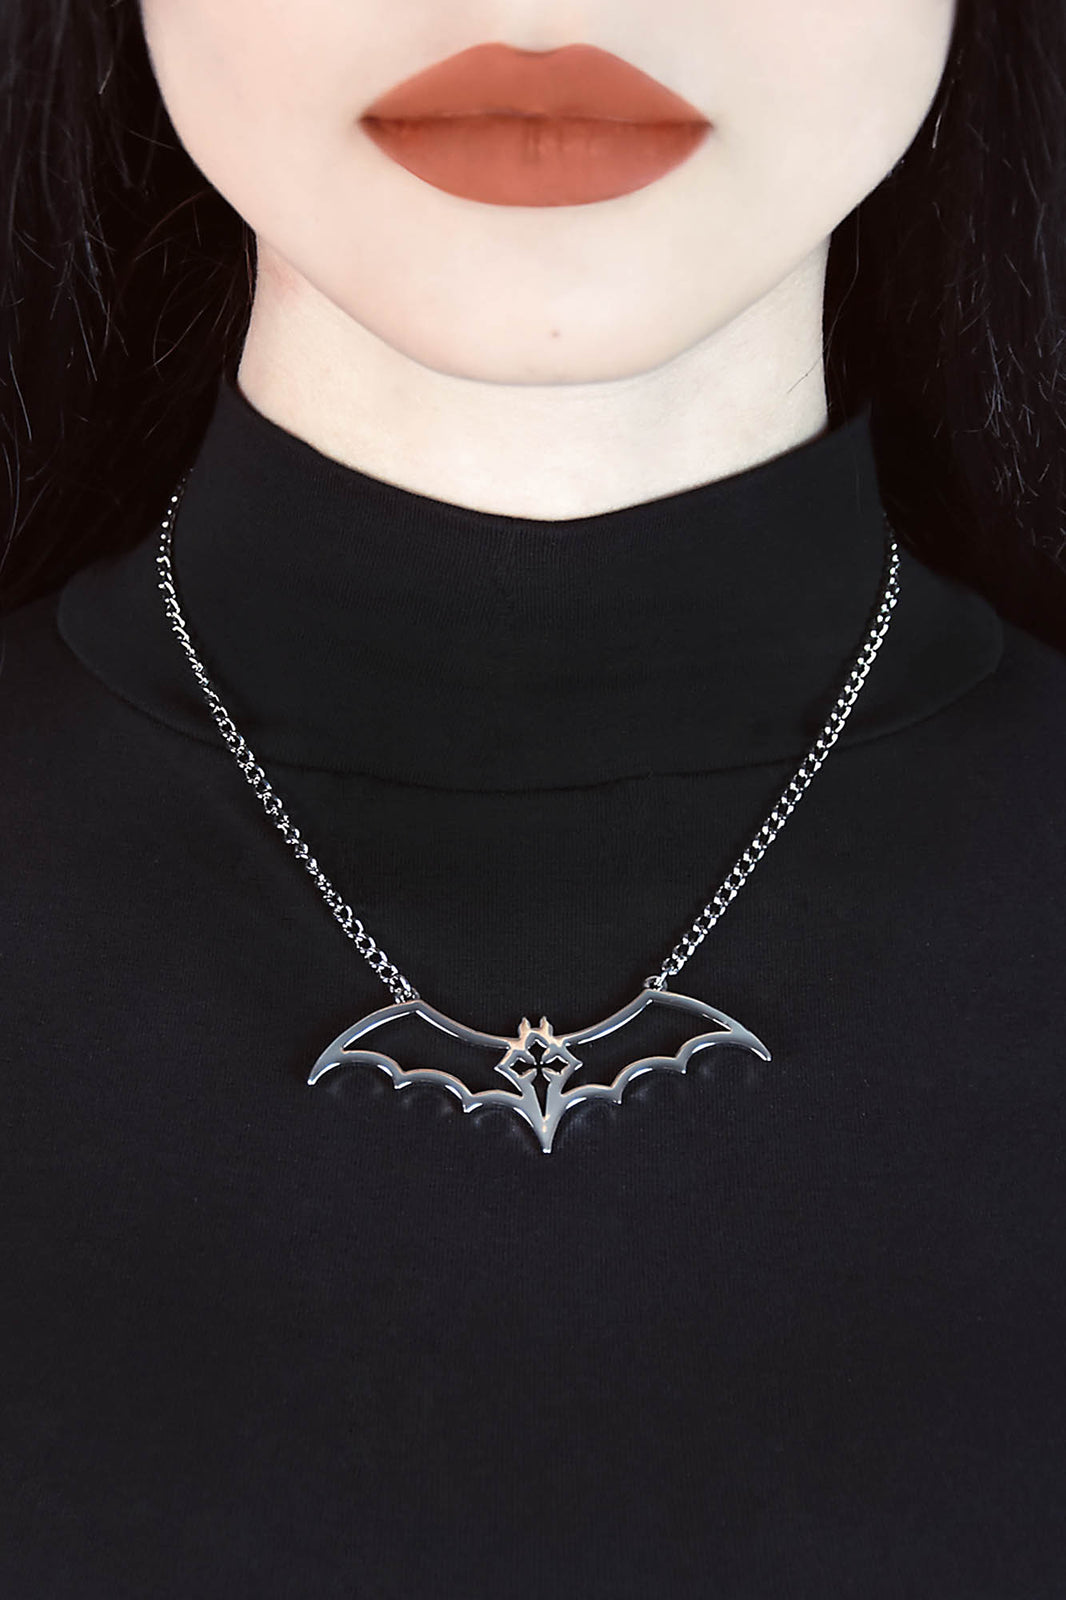 Nacht Necklace